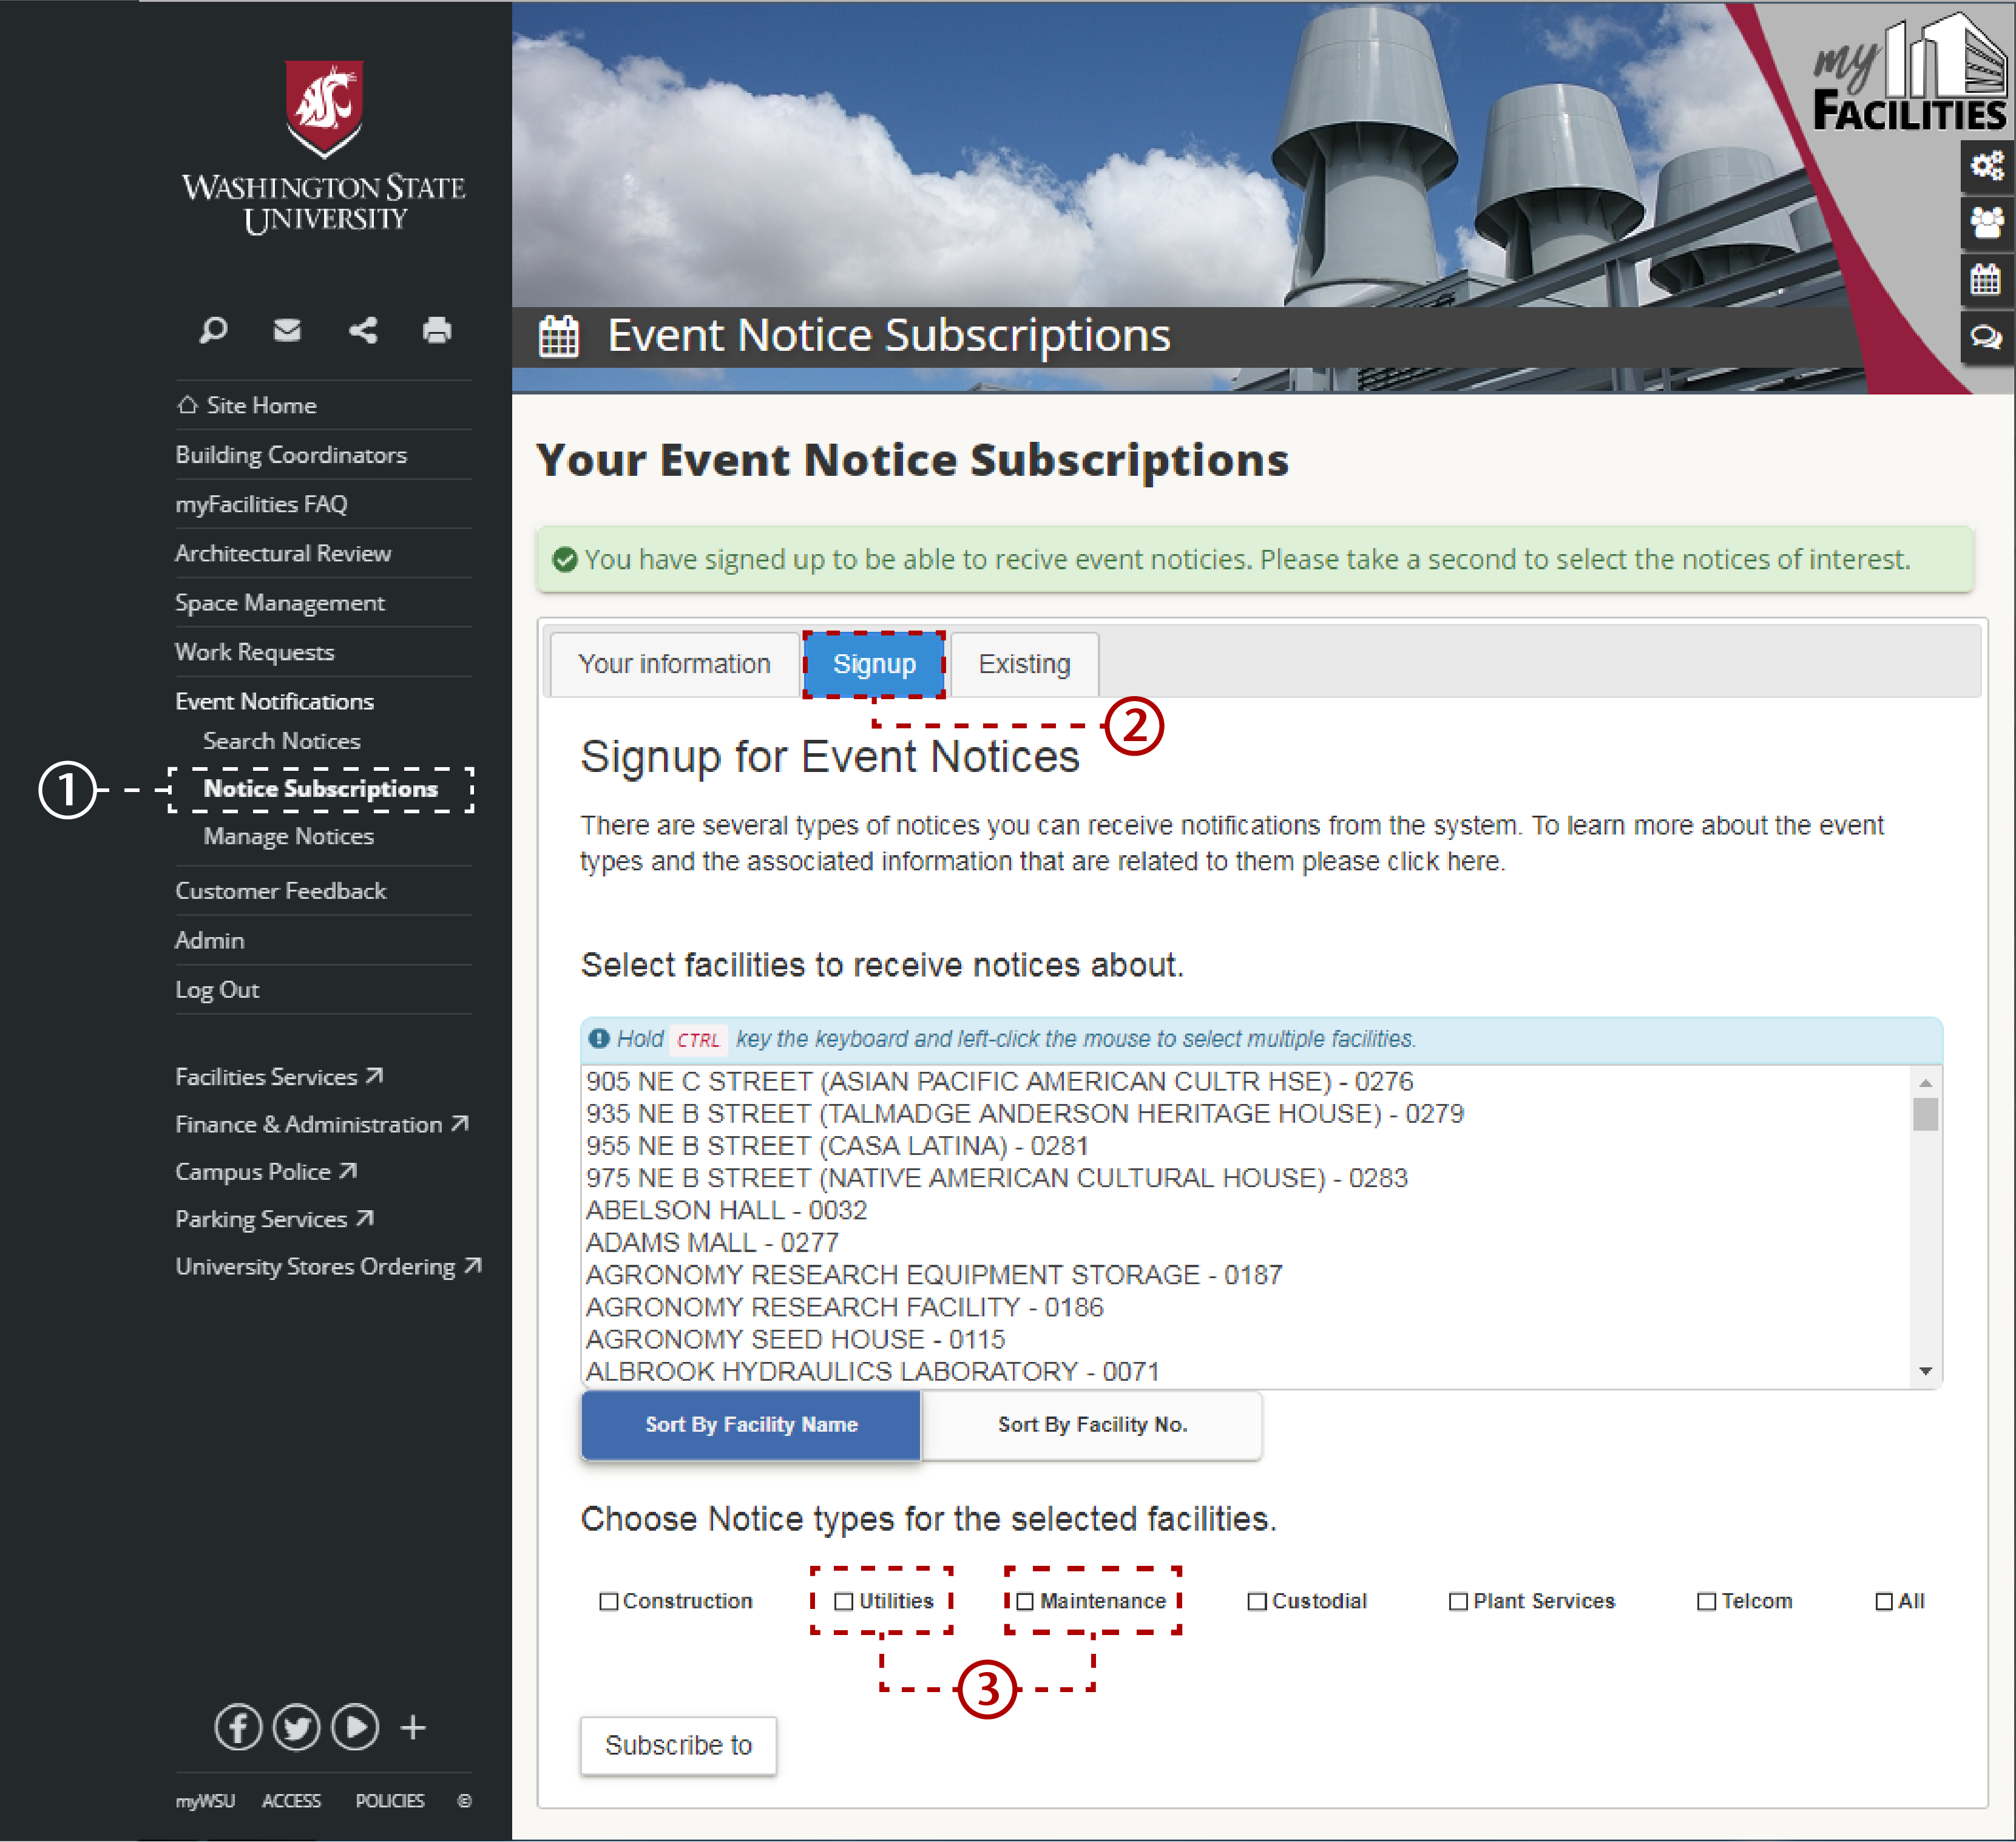 Screenshot of directions, detailed above, to sign up for event notices.